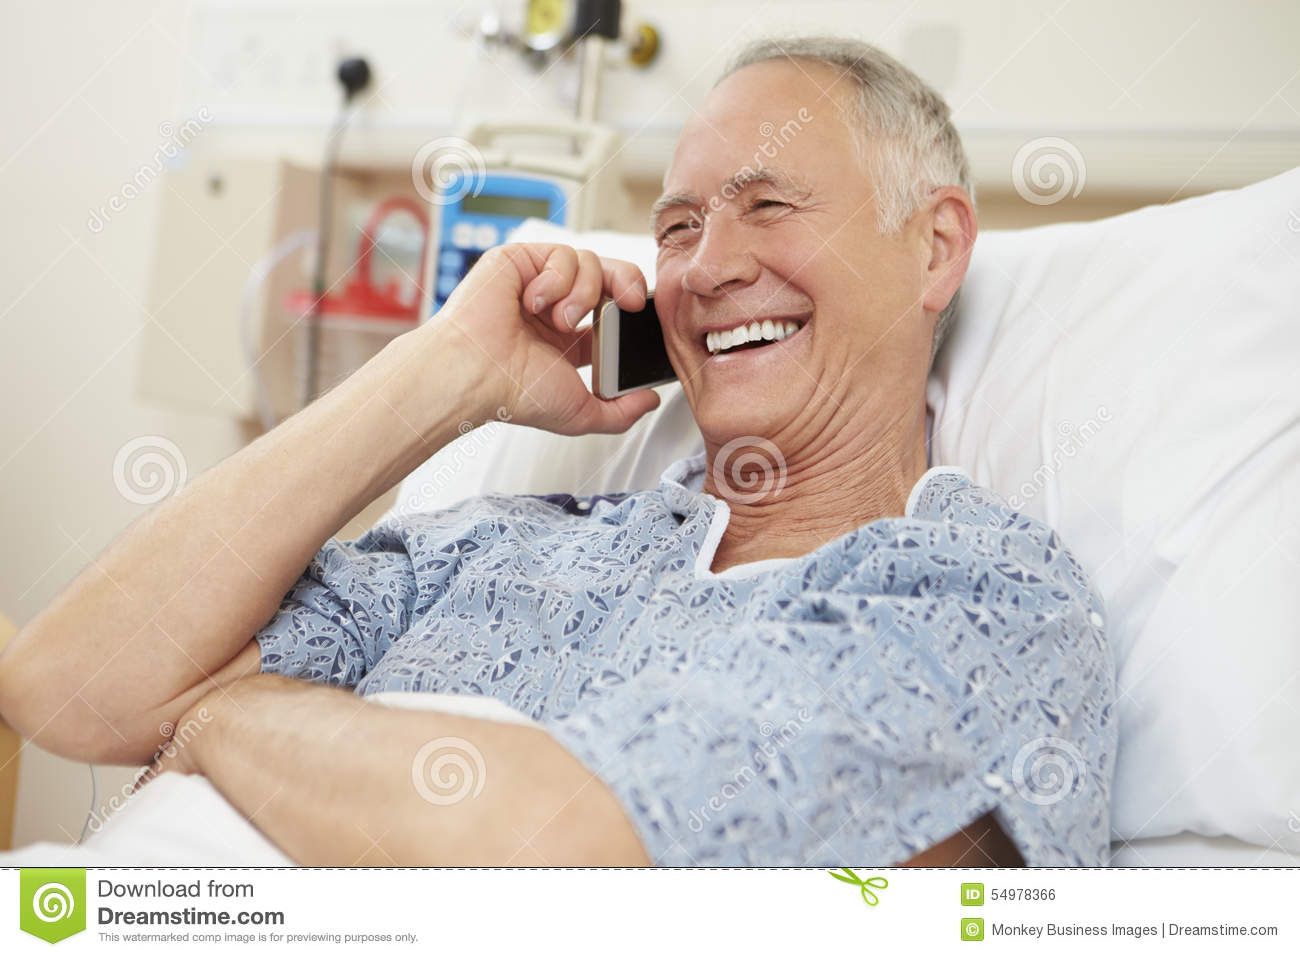 Senior Male Patient Using Mobile Phone In Hospital Bed